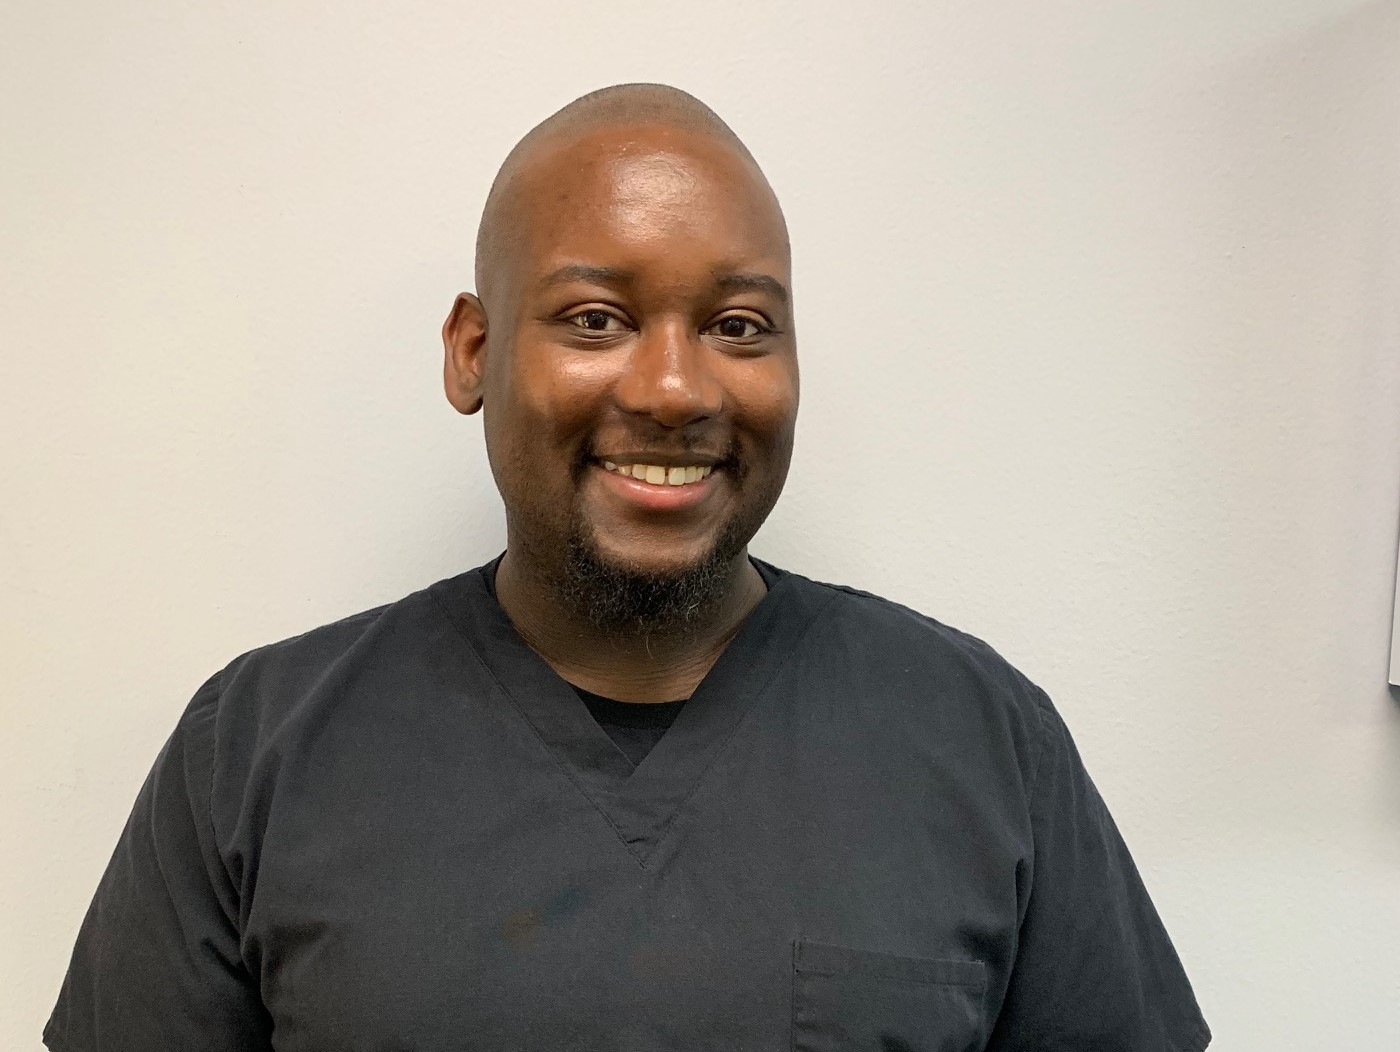 William Scott, medical assistant, PPOA Patient Care Champion